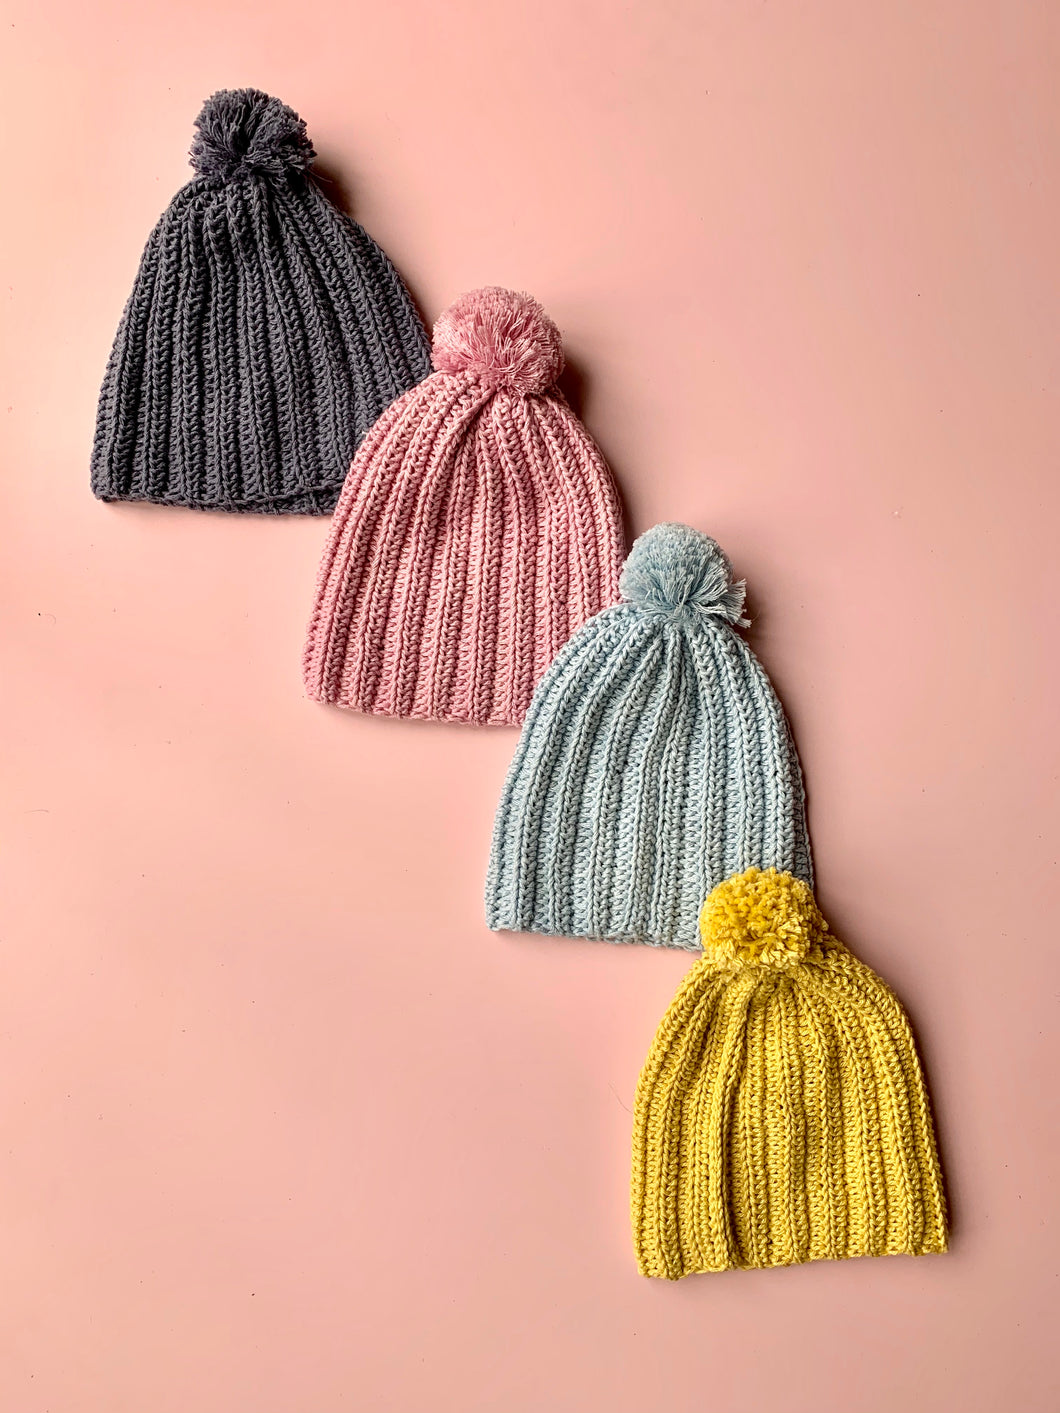 Pom Pom hats - Love Sam